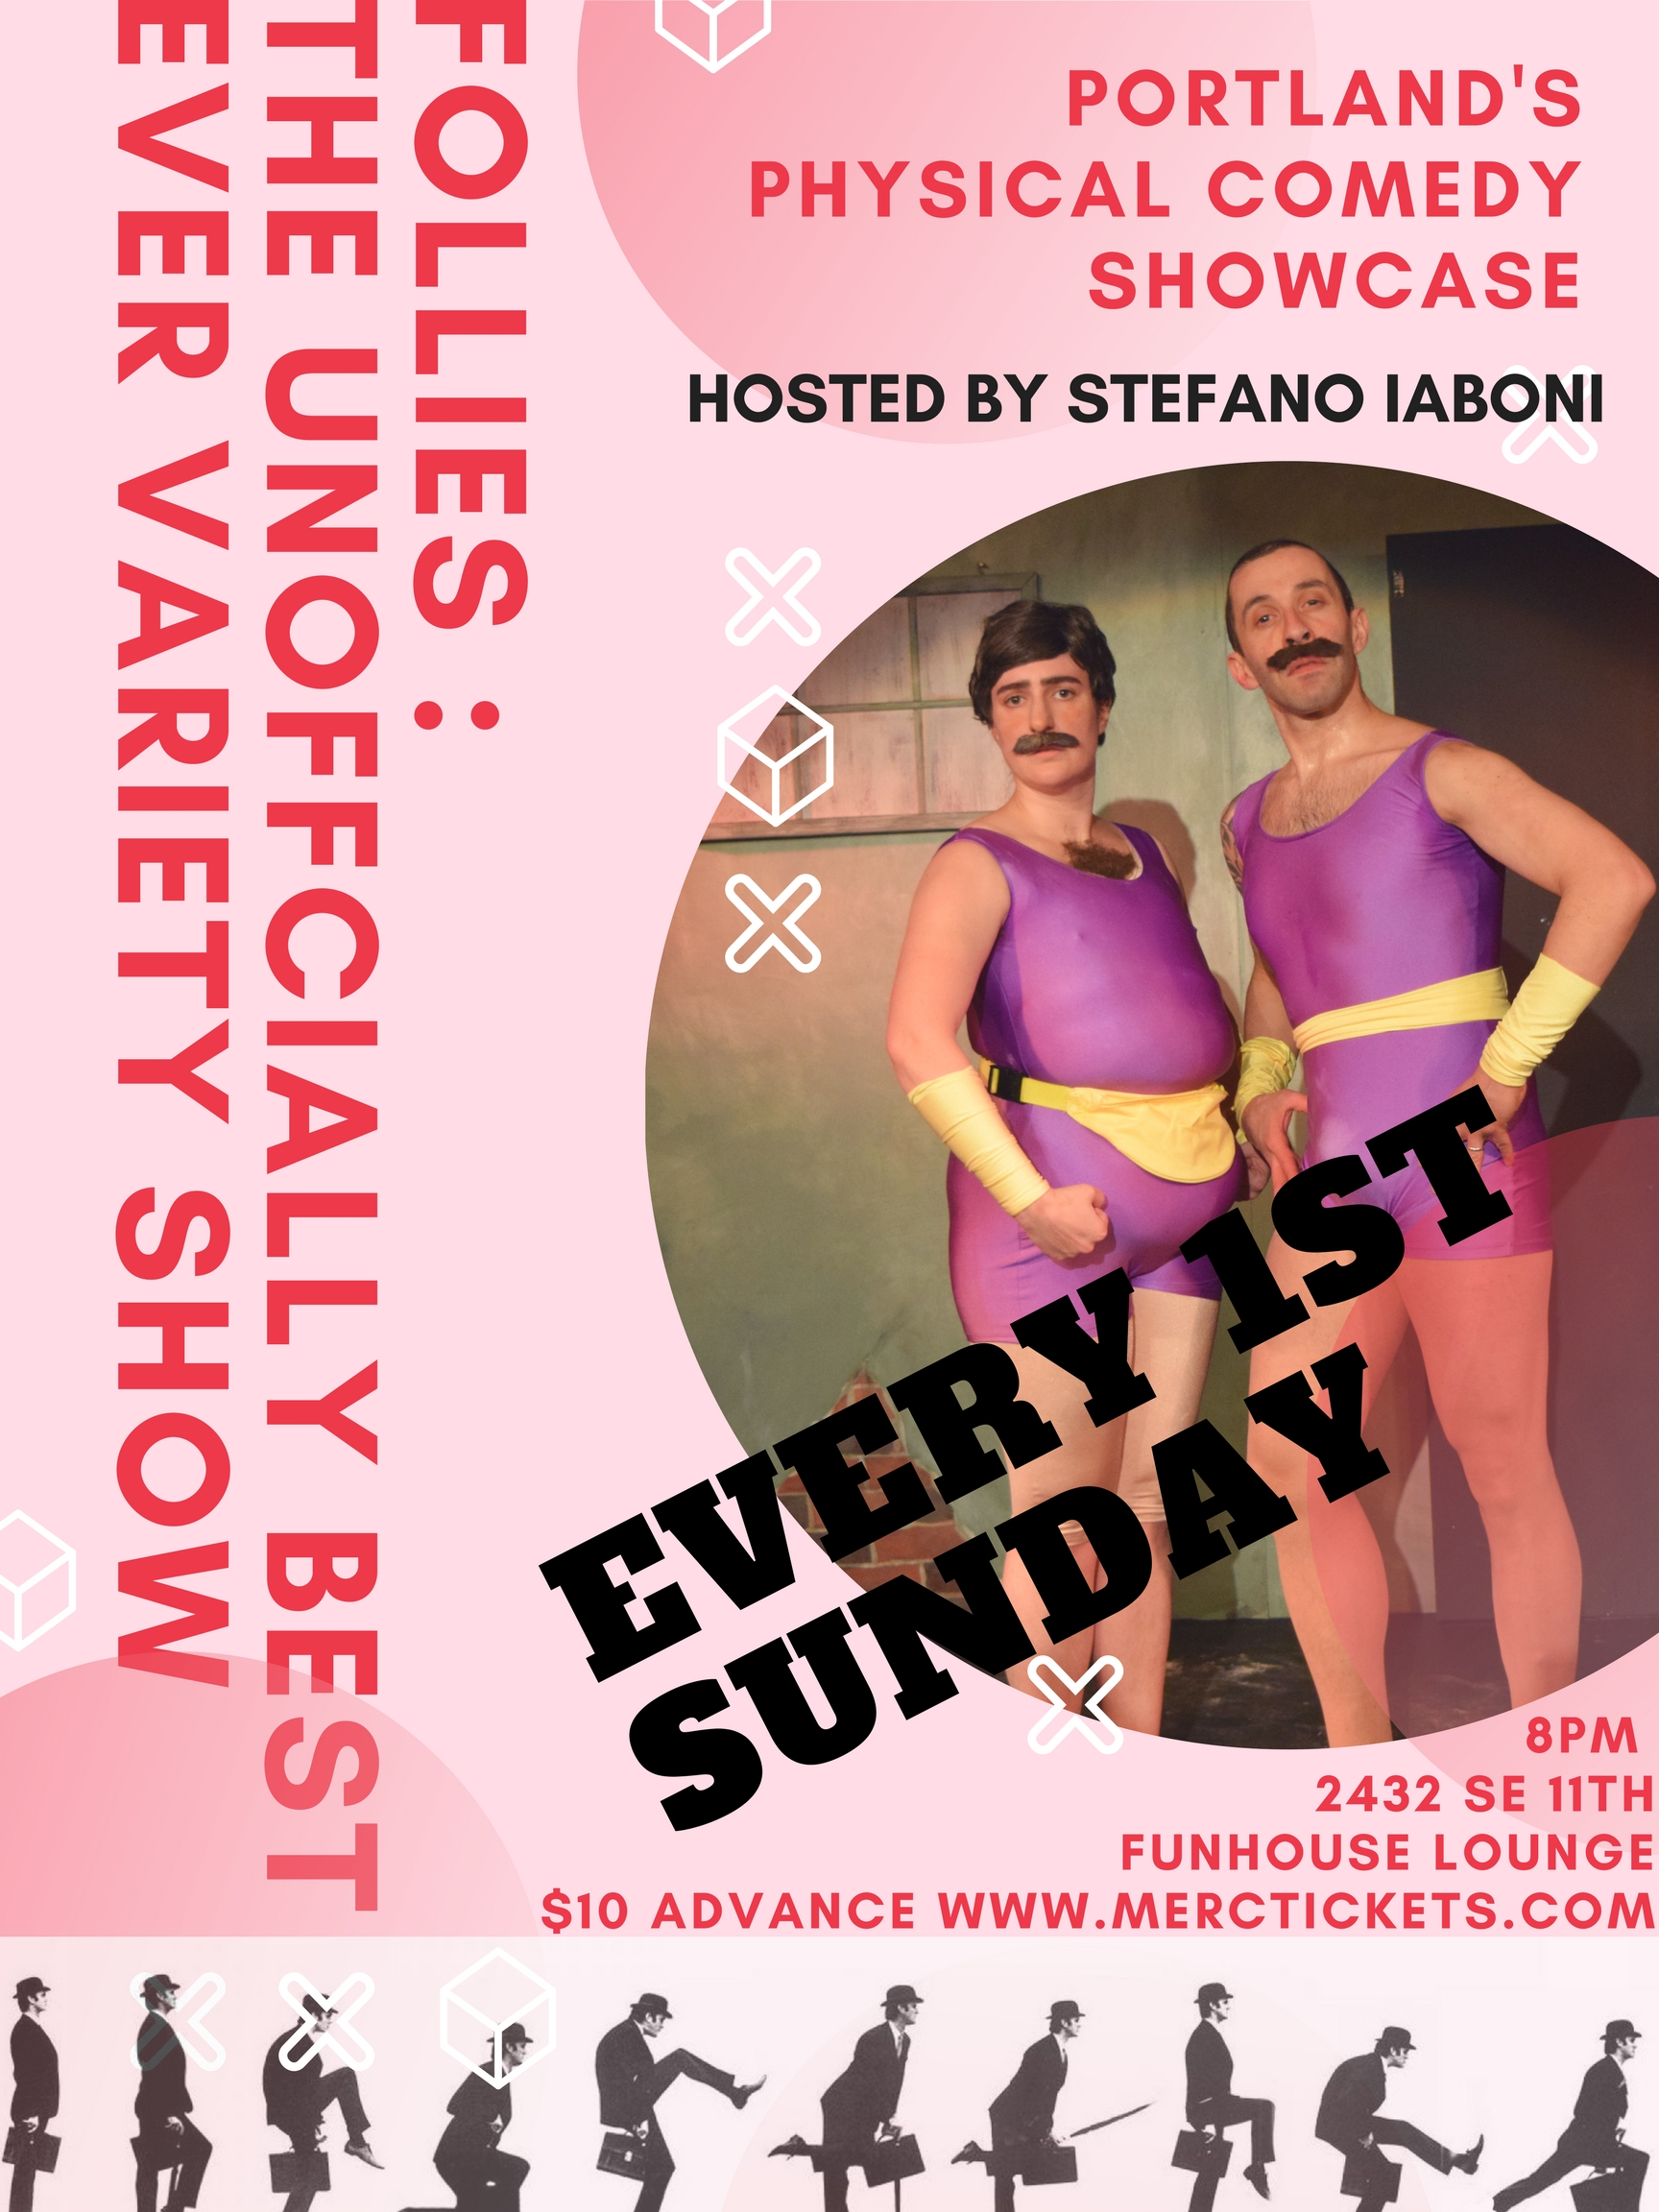 Follies-The Unofficially Best Ever Variety Show Tickets | The Funhouse  Lounge | Portland, Or | Sun, May 6, 2018 at 8pm | Mercury Tickets